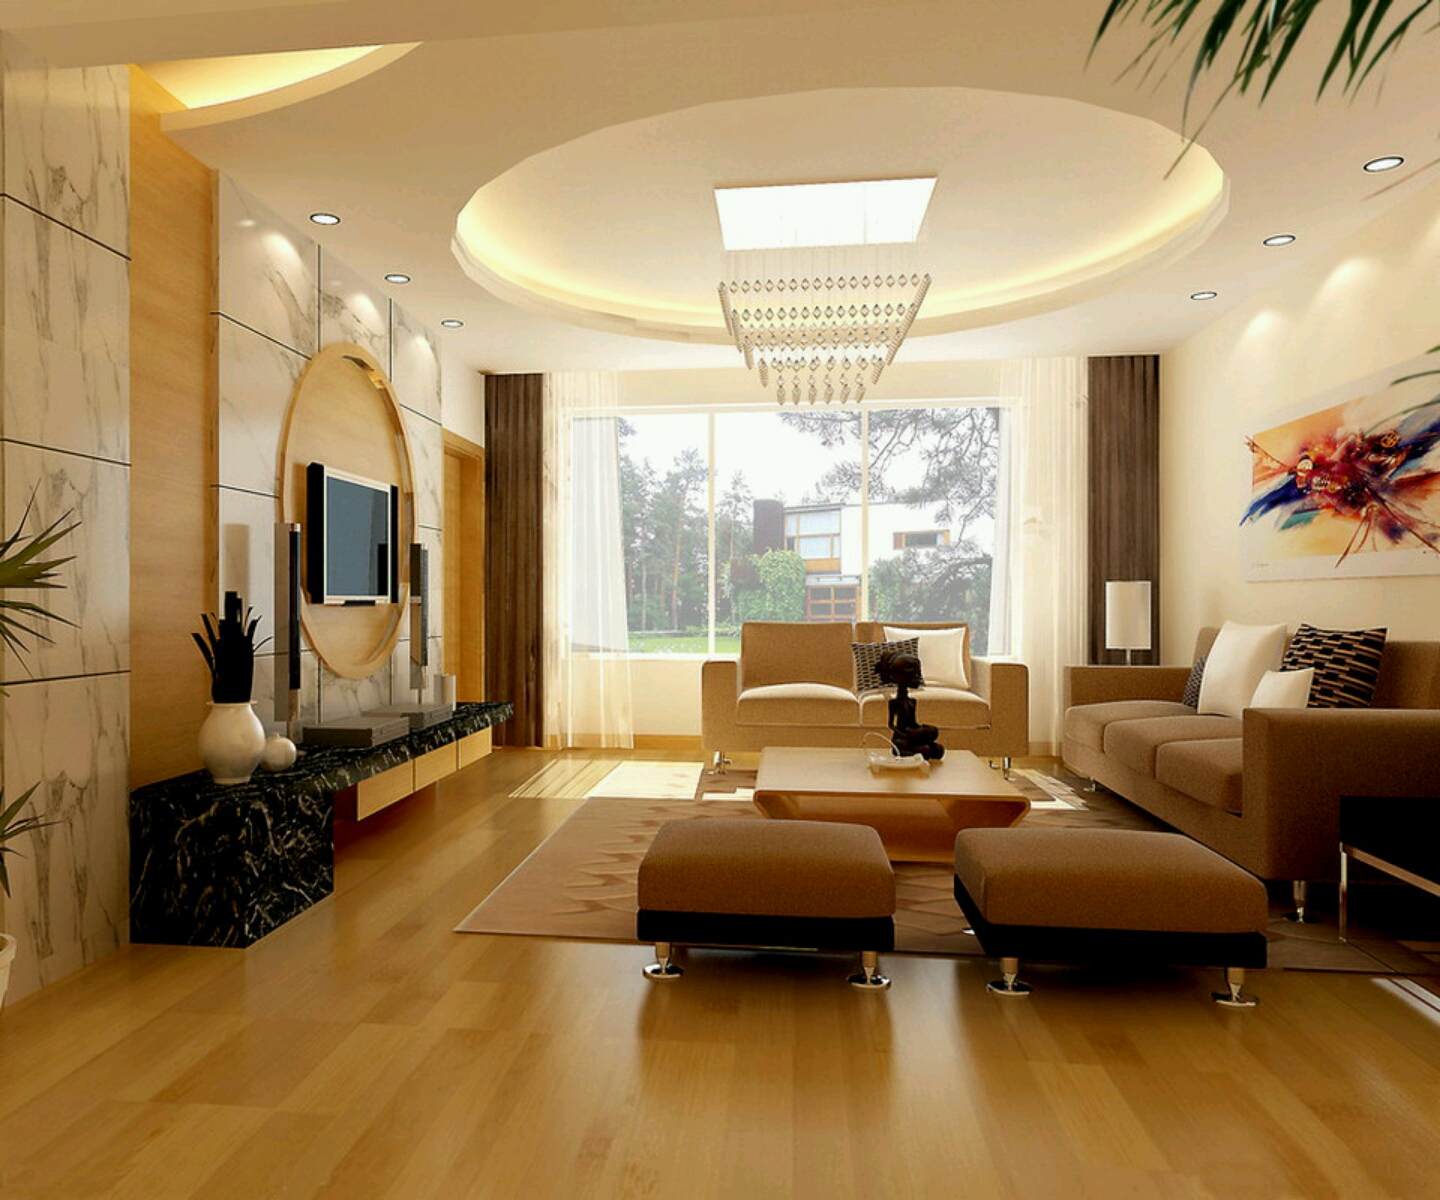 Modern interior decoration living rooms ceiling designs for Living room decor styles